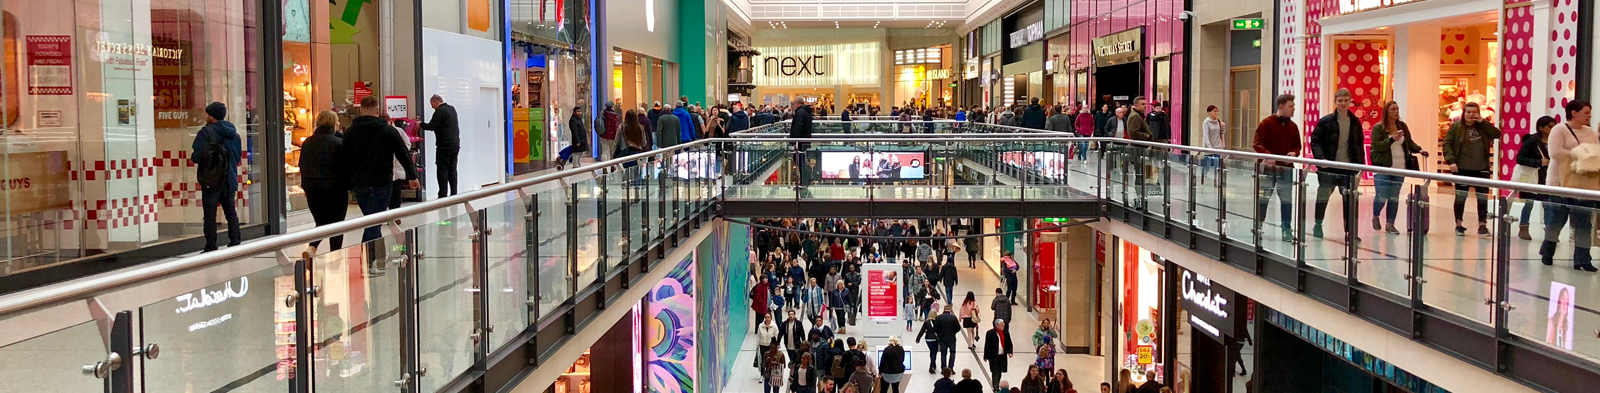 people walking around a crowded shopping centre